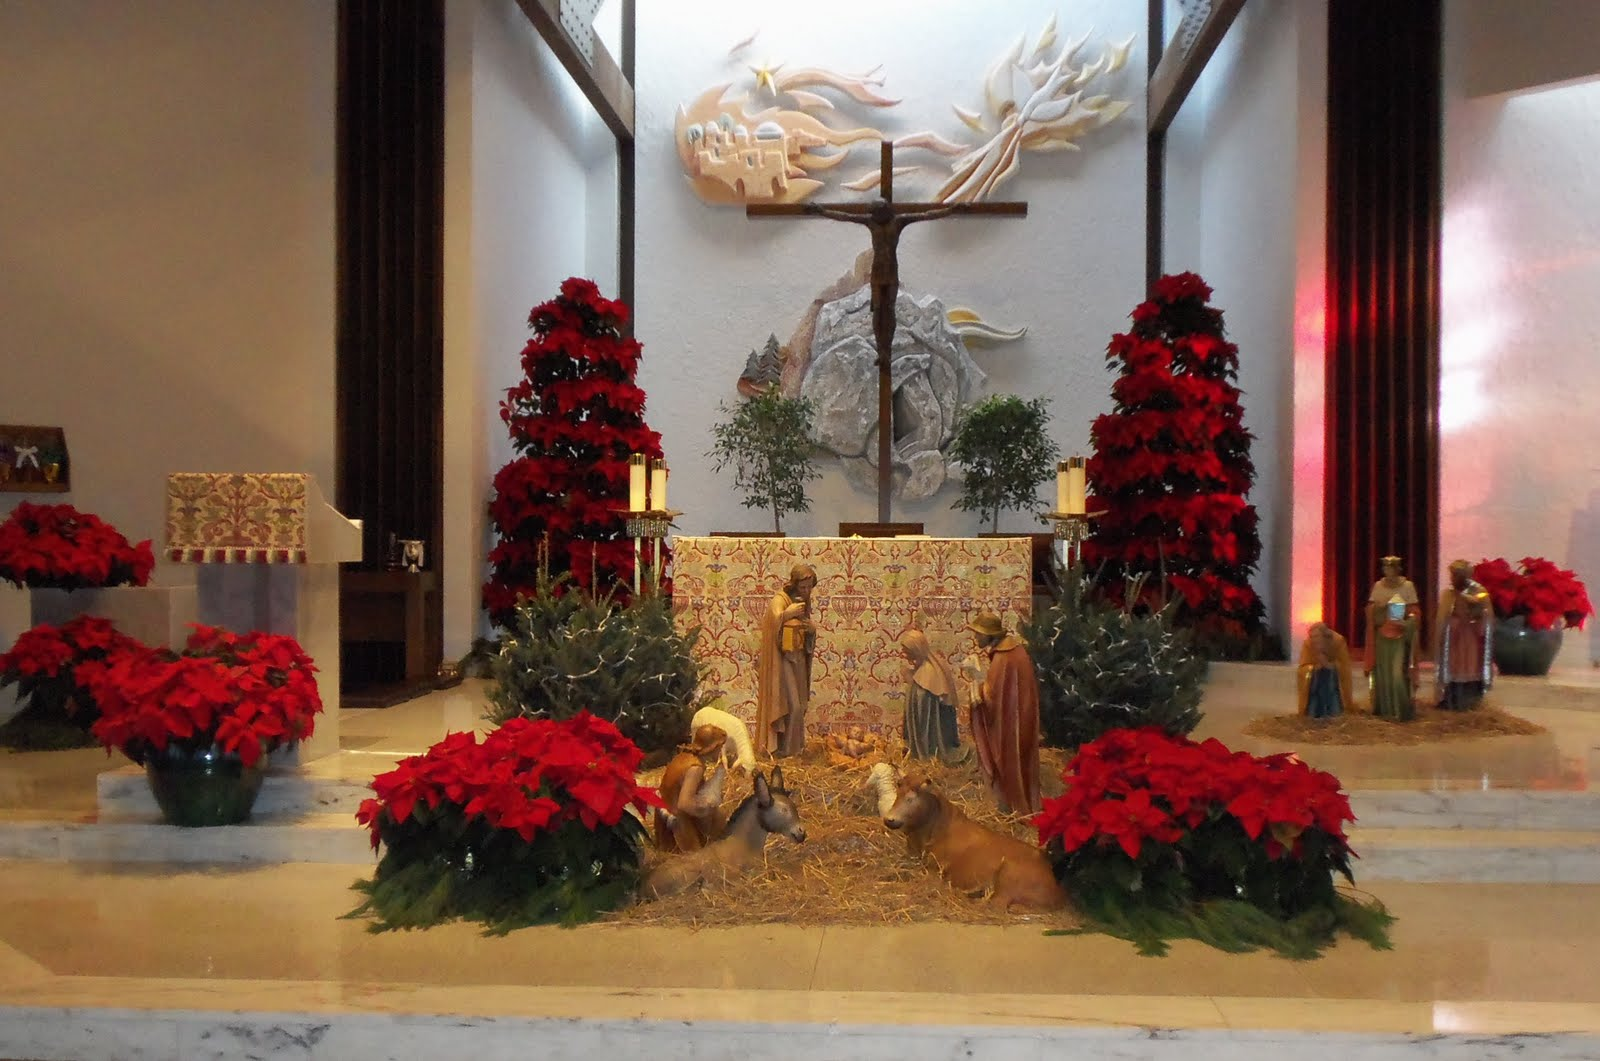 & A DEBBIE-DABBLE CHRISTMAS: CHRISTMAS IN OUR CHURCH